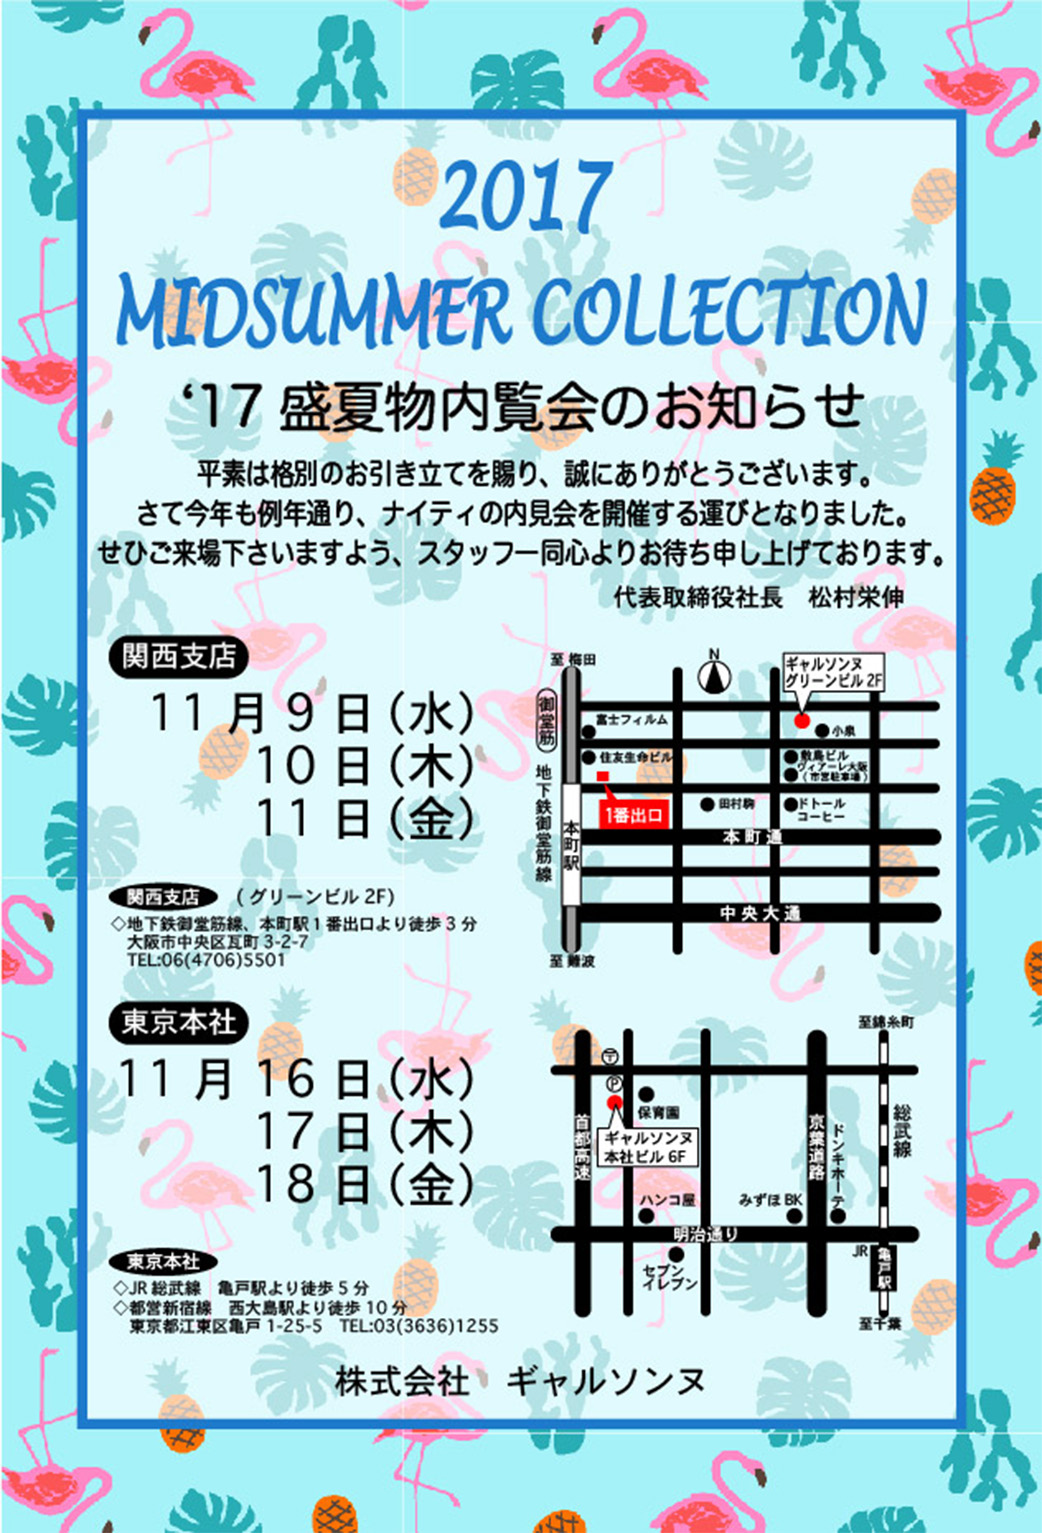 midsummer collection